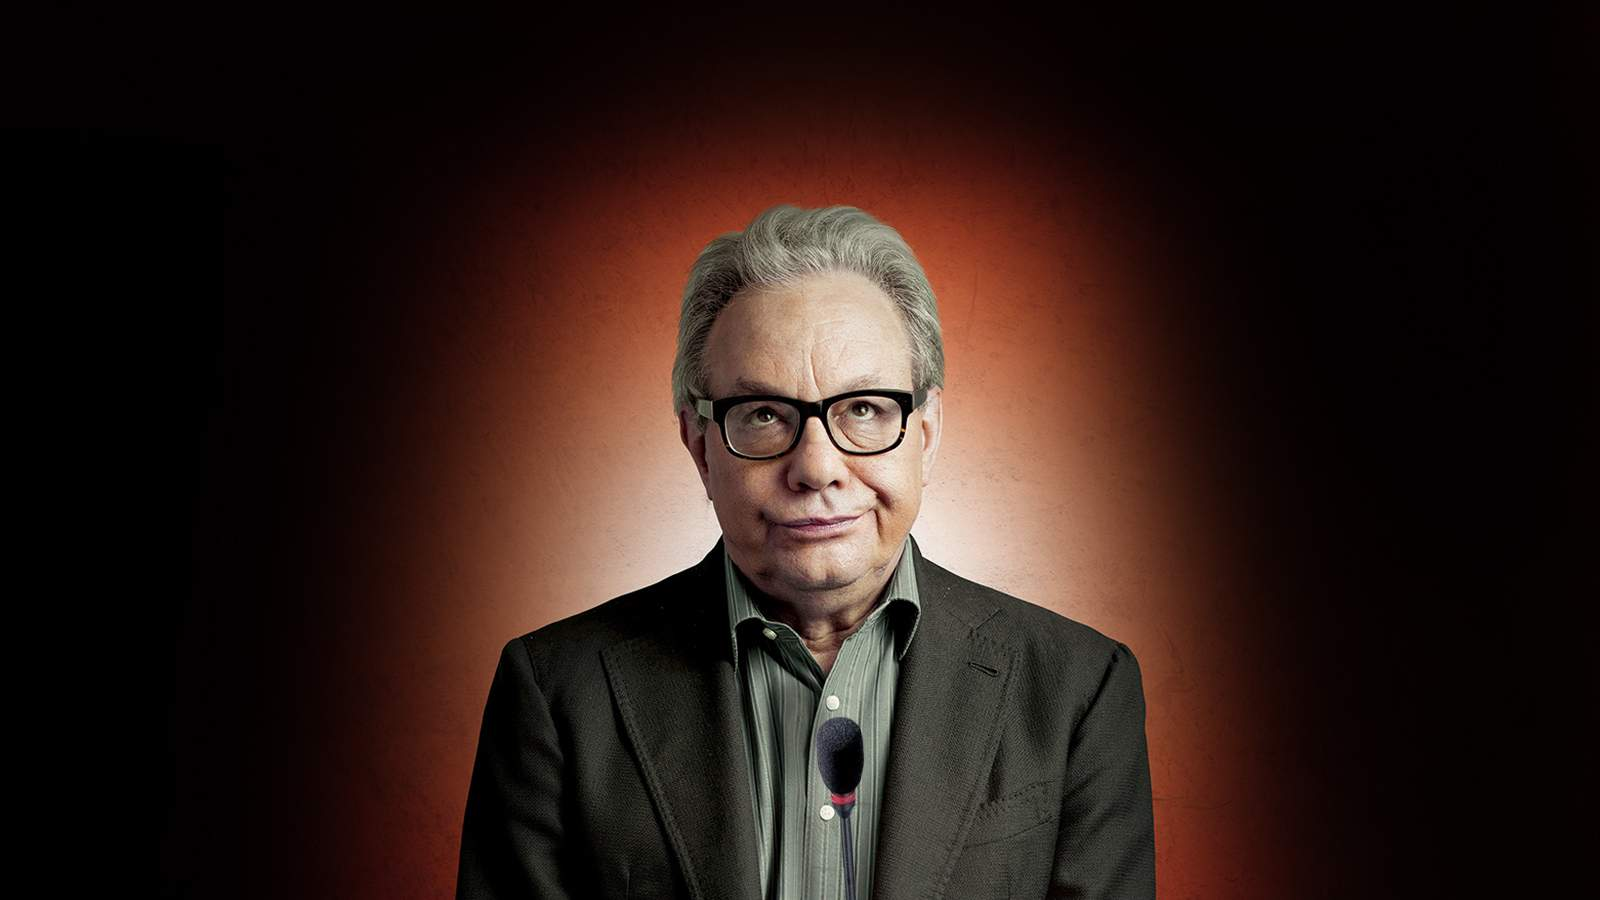 Lewis Black (Rescheduled from 4/19)